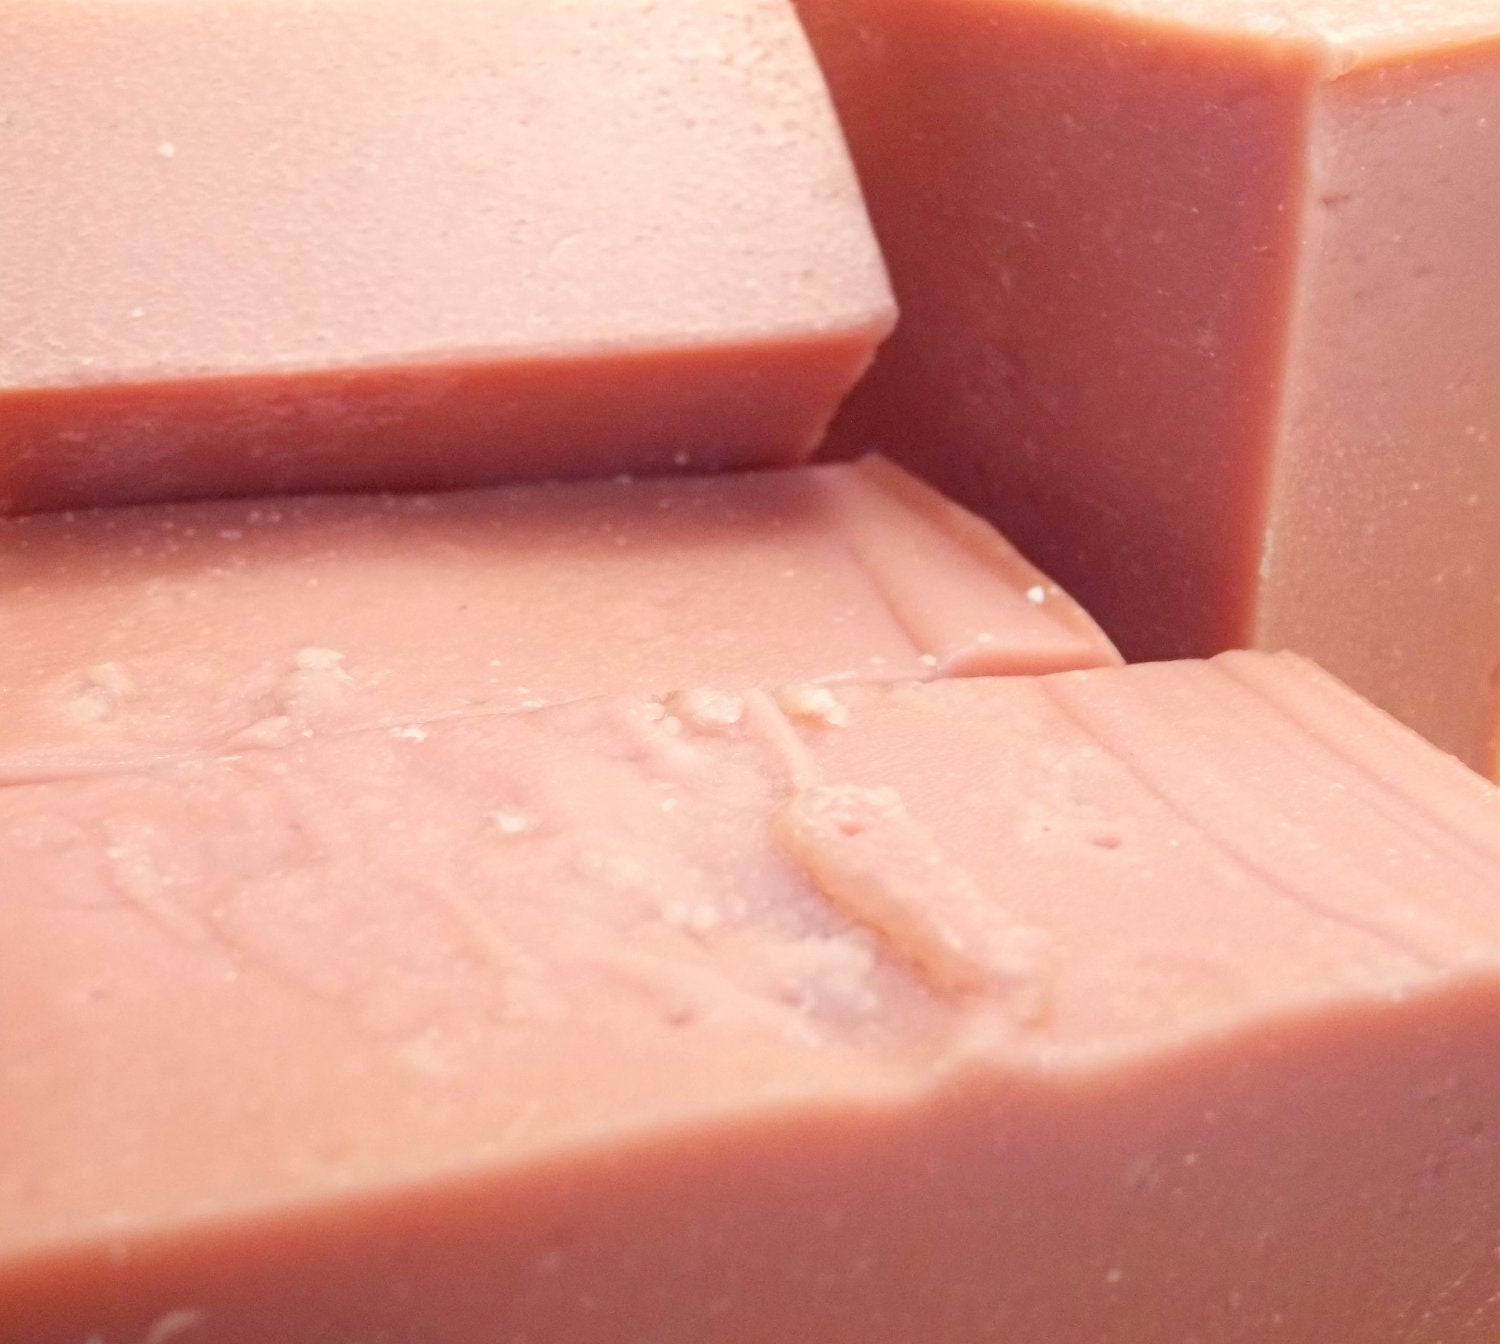 Sparkling Citrus Soap with French Pink Clay & Comfrey - Mundus